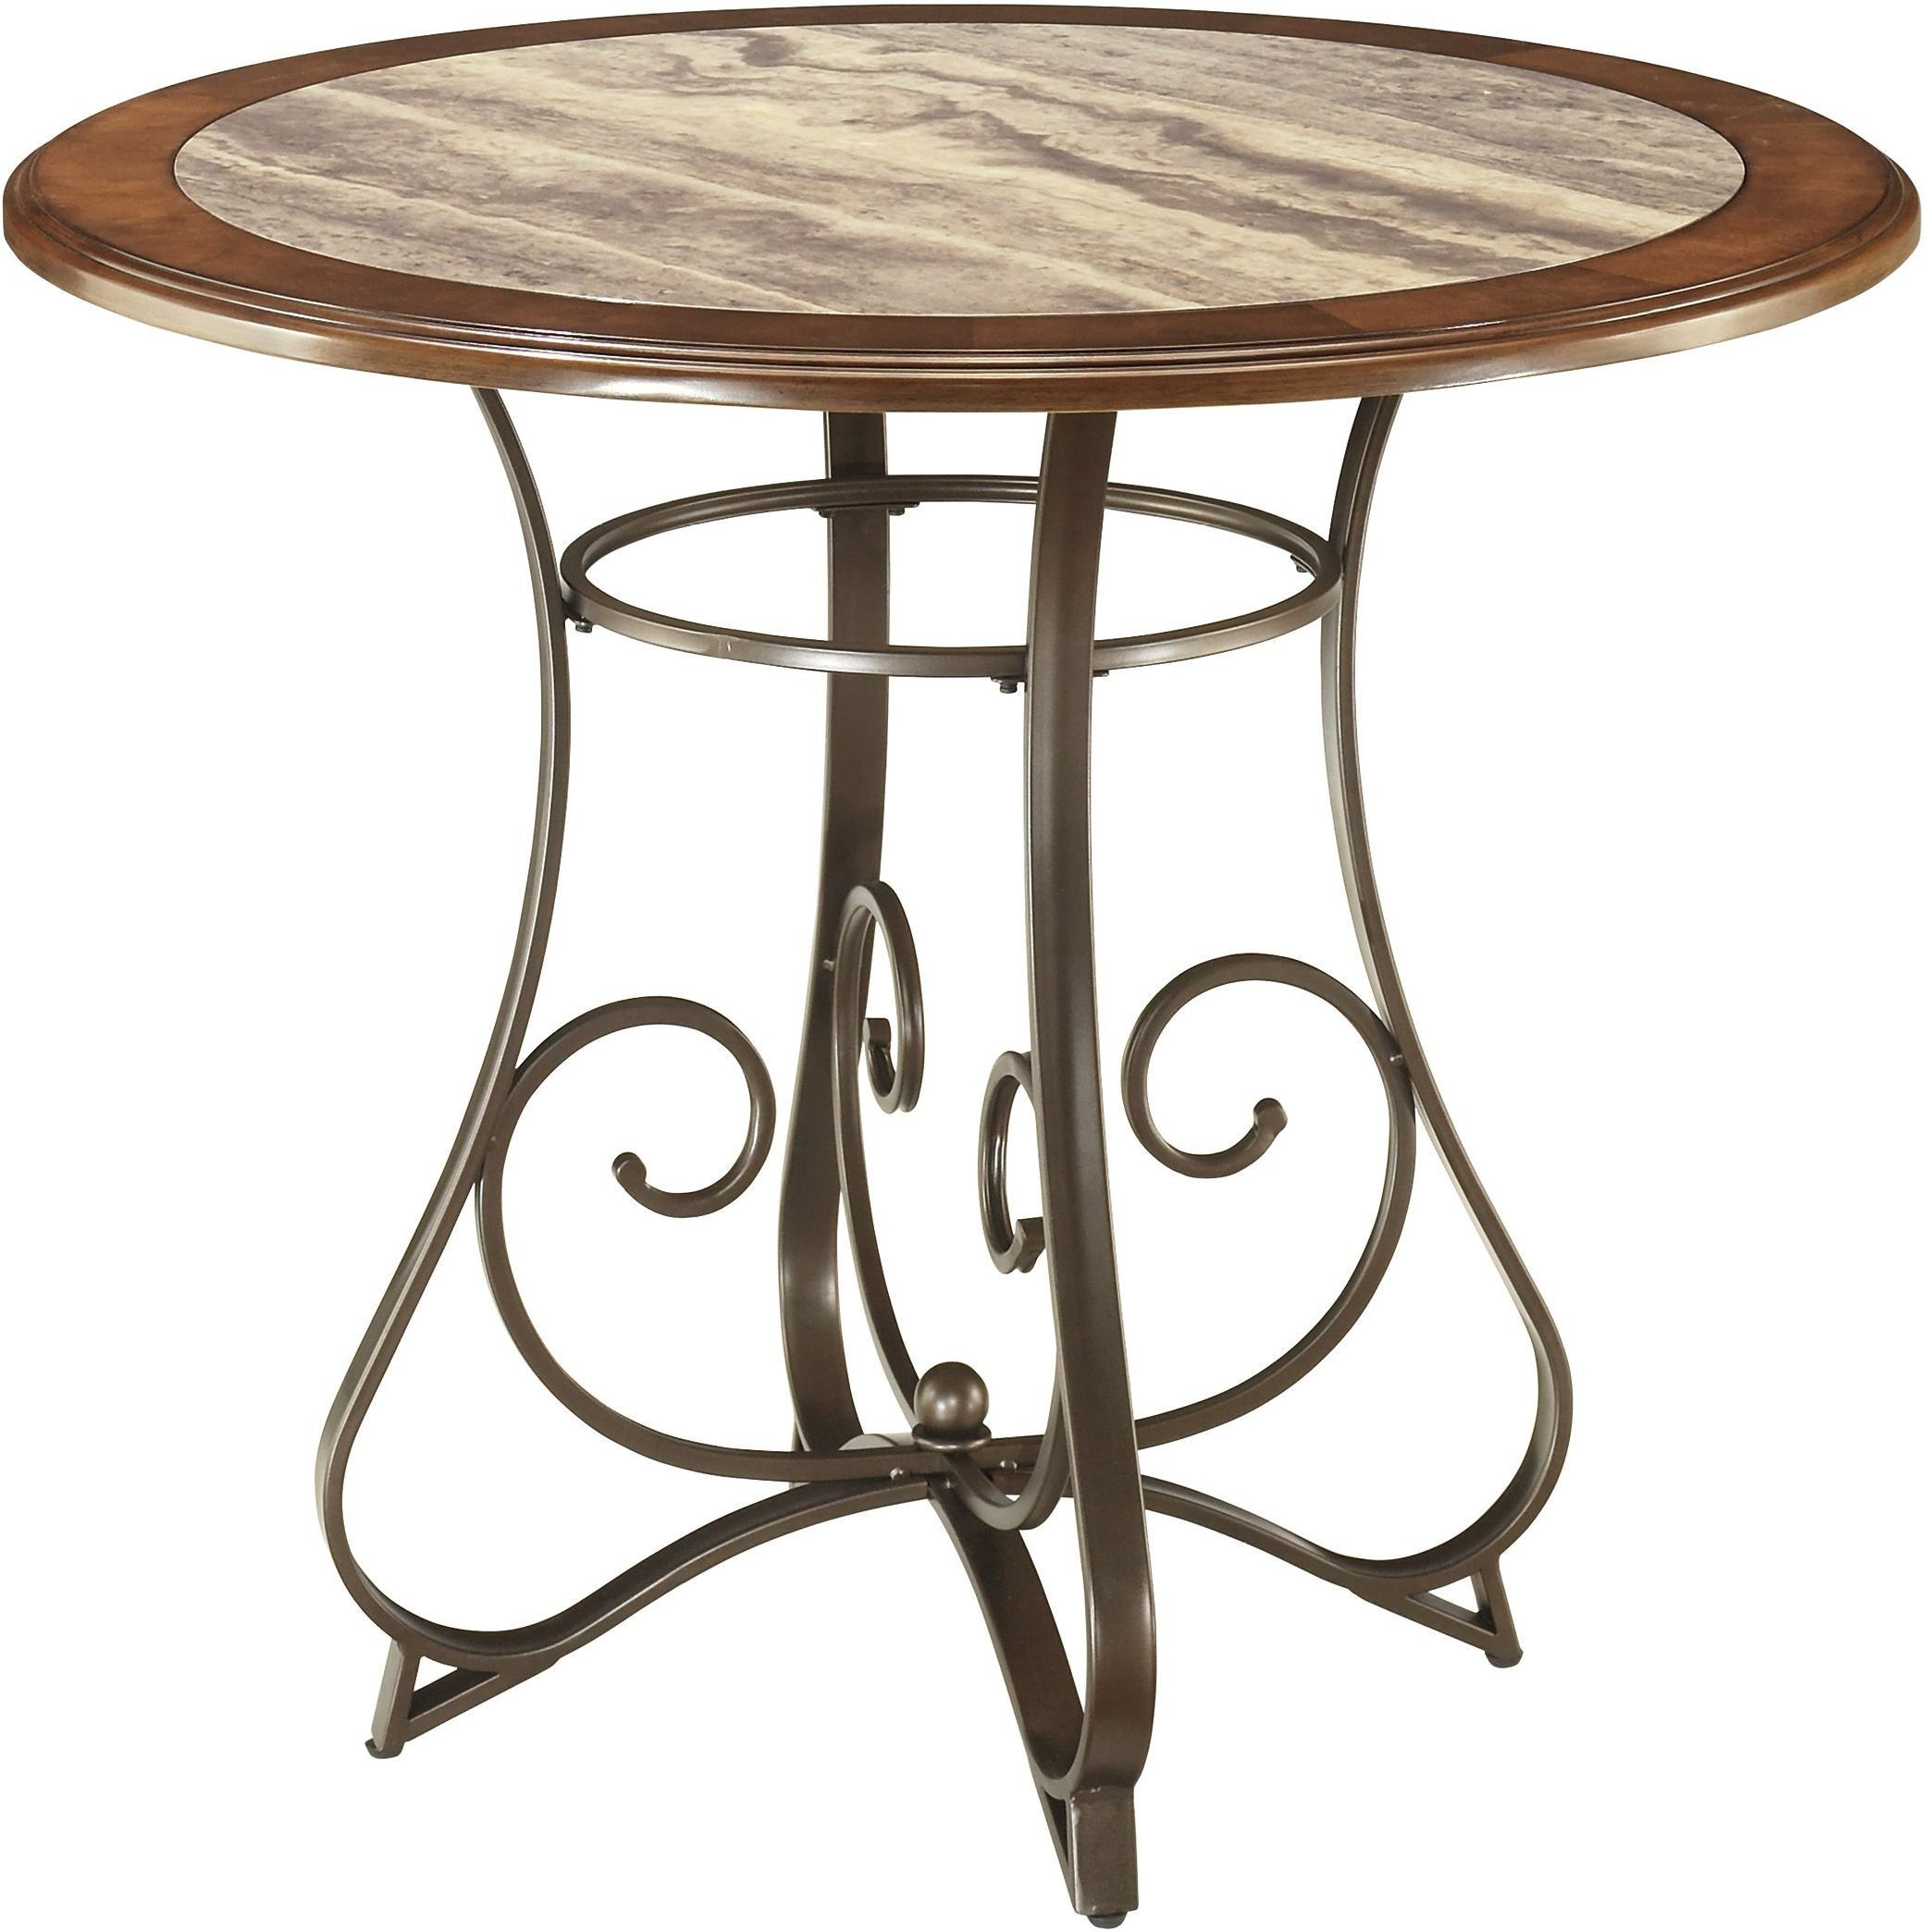 Counter Height Dining Tables: Hopstand Round Counter Height Dining Table From Ashley